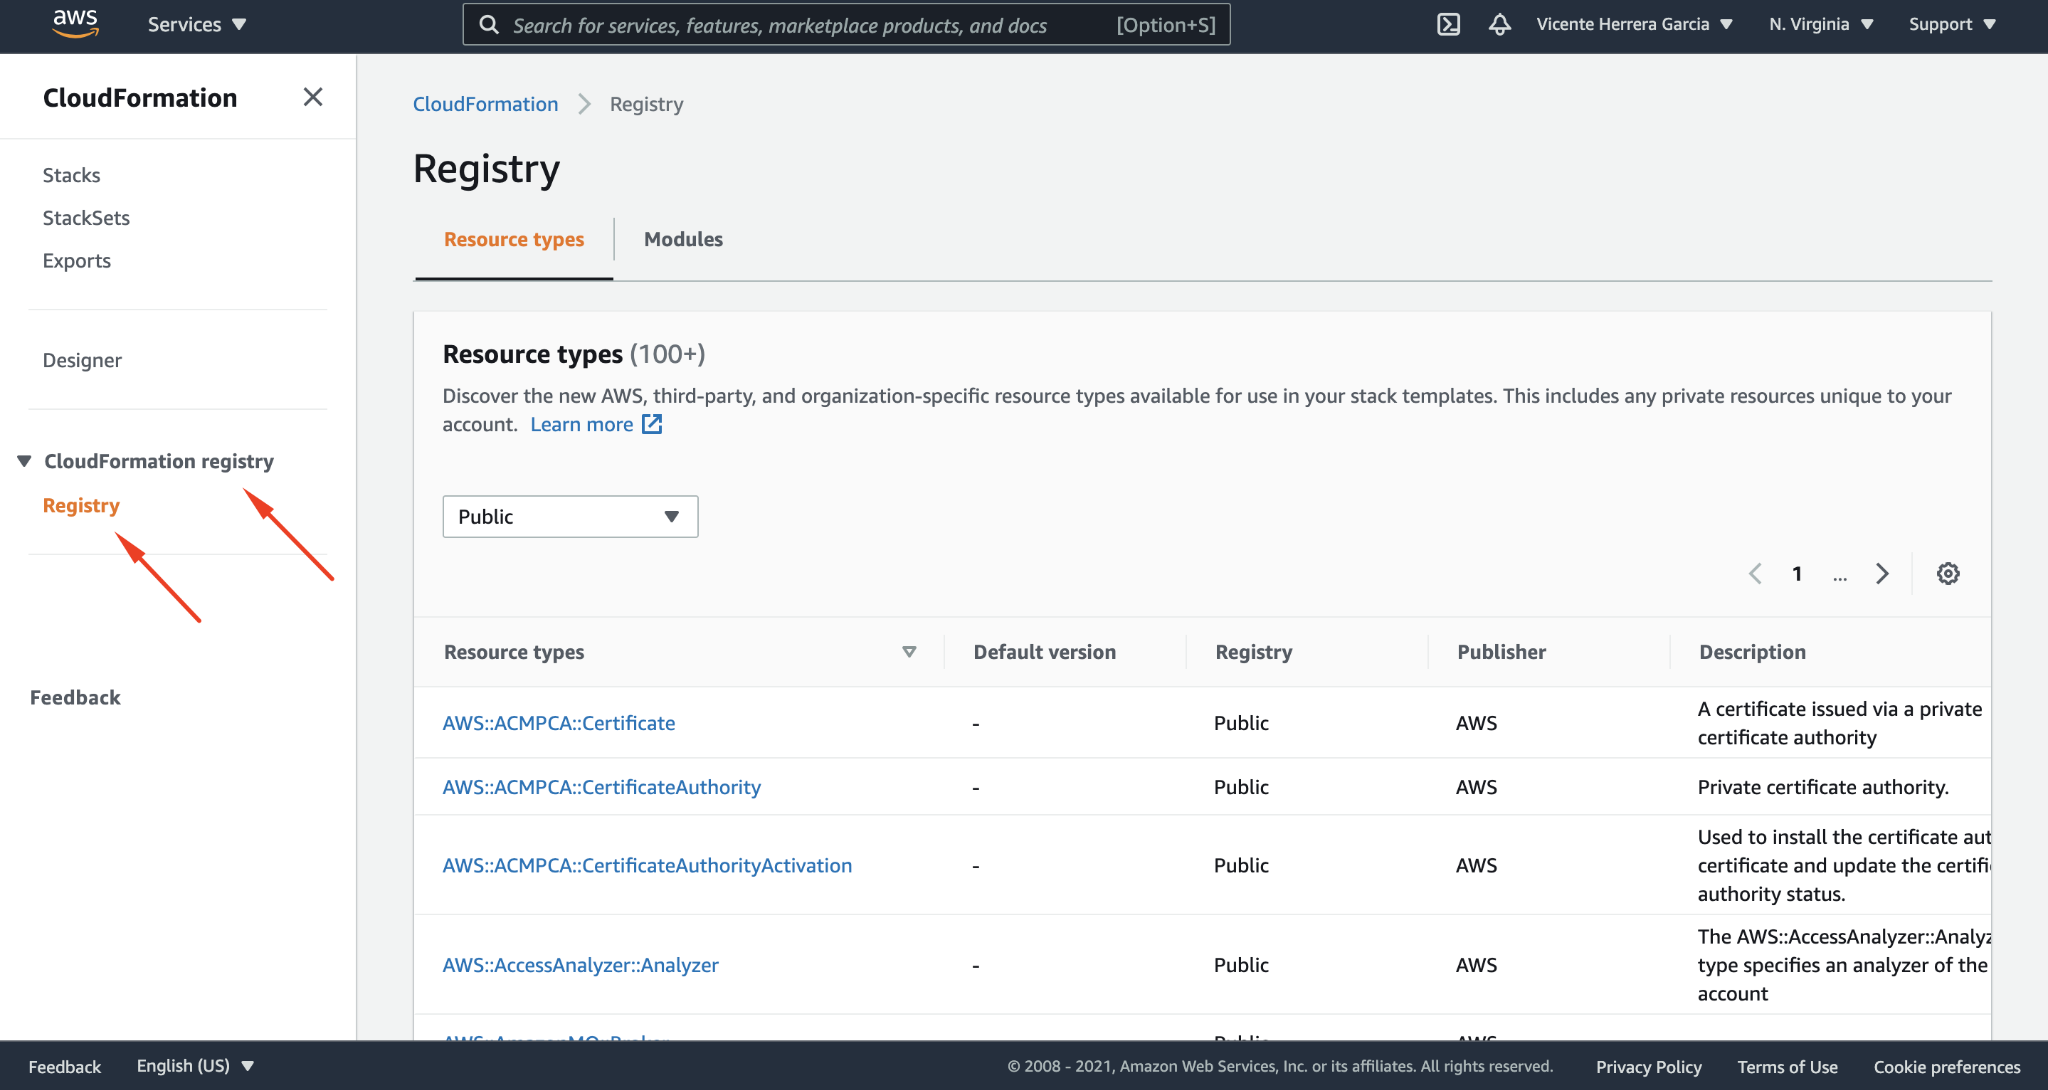 Accessing extensions from the AWS public cloud registry